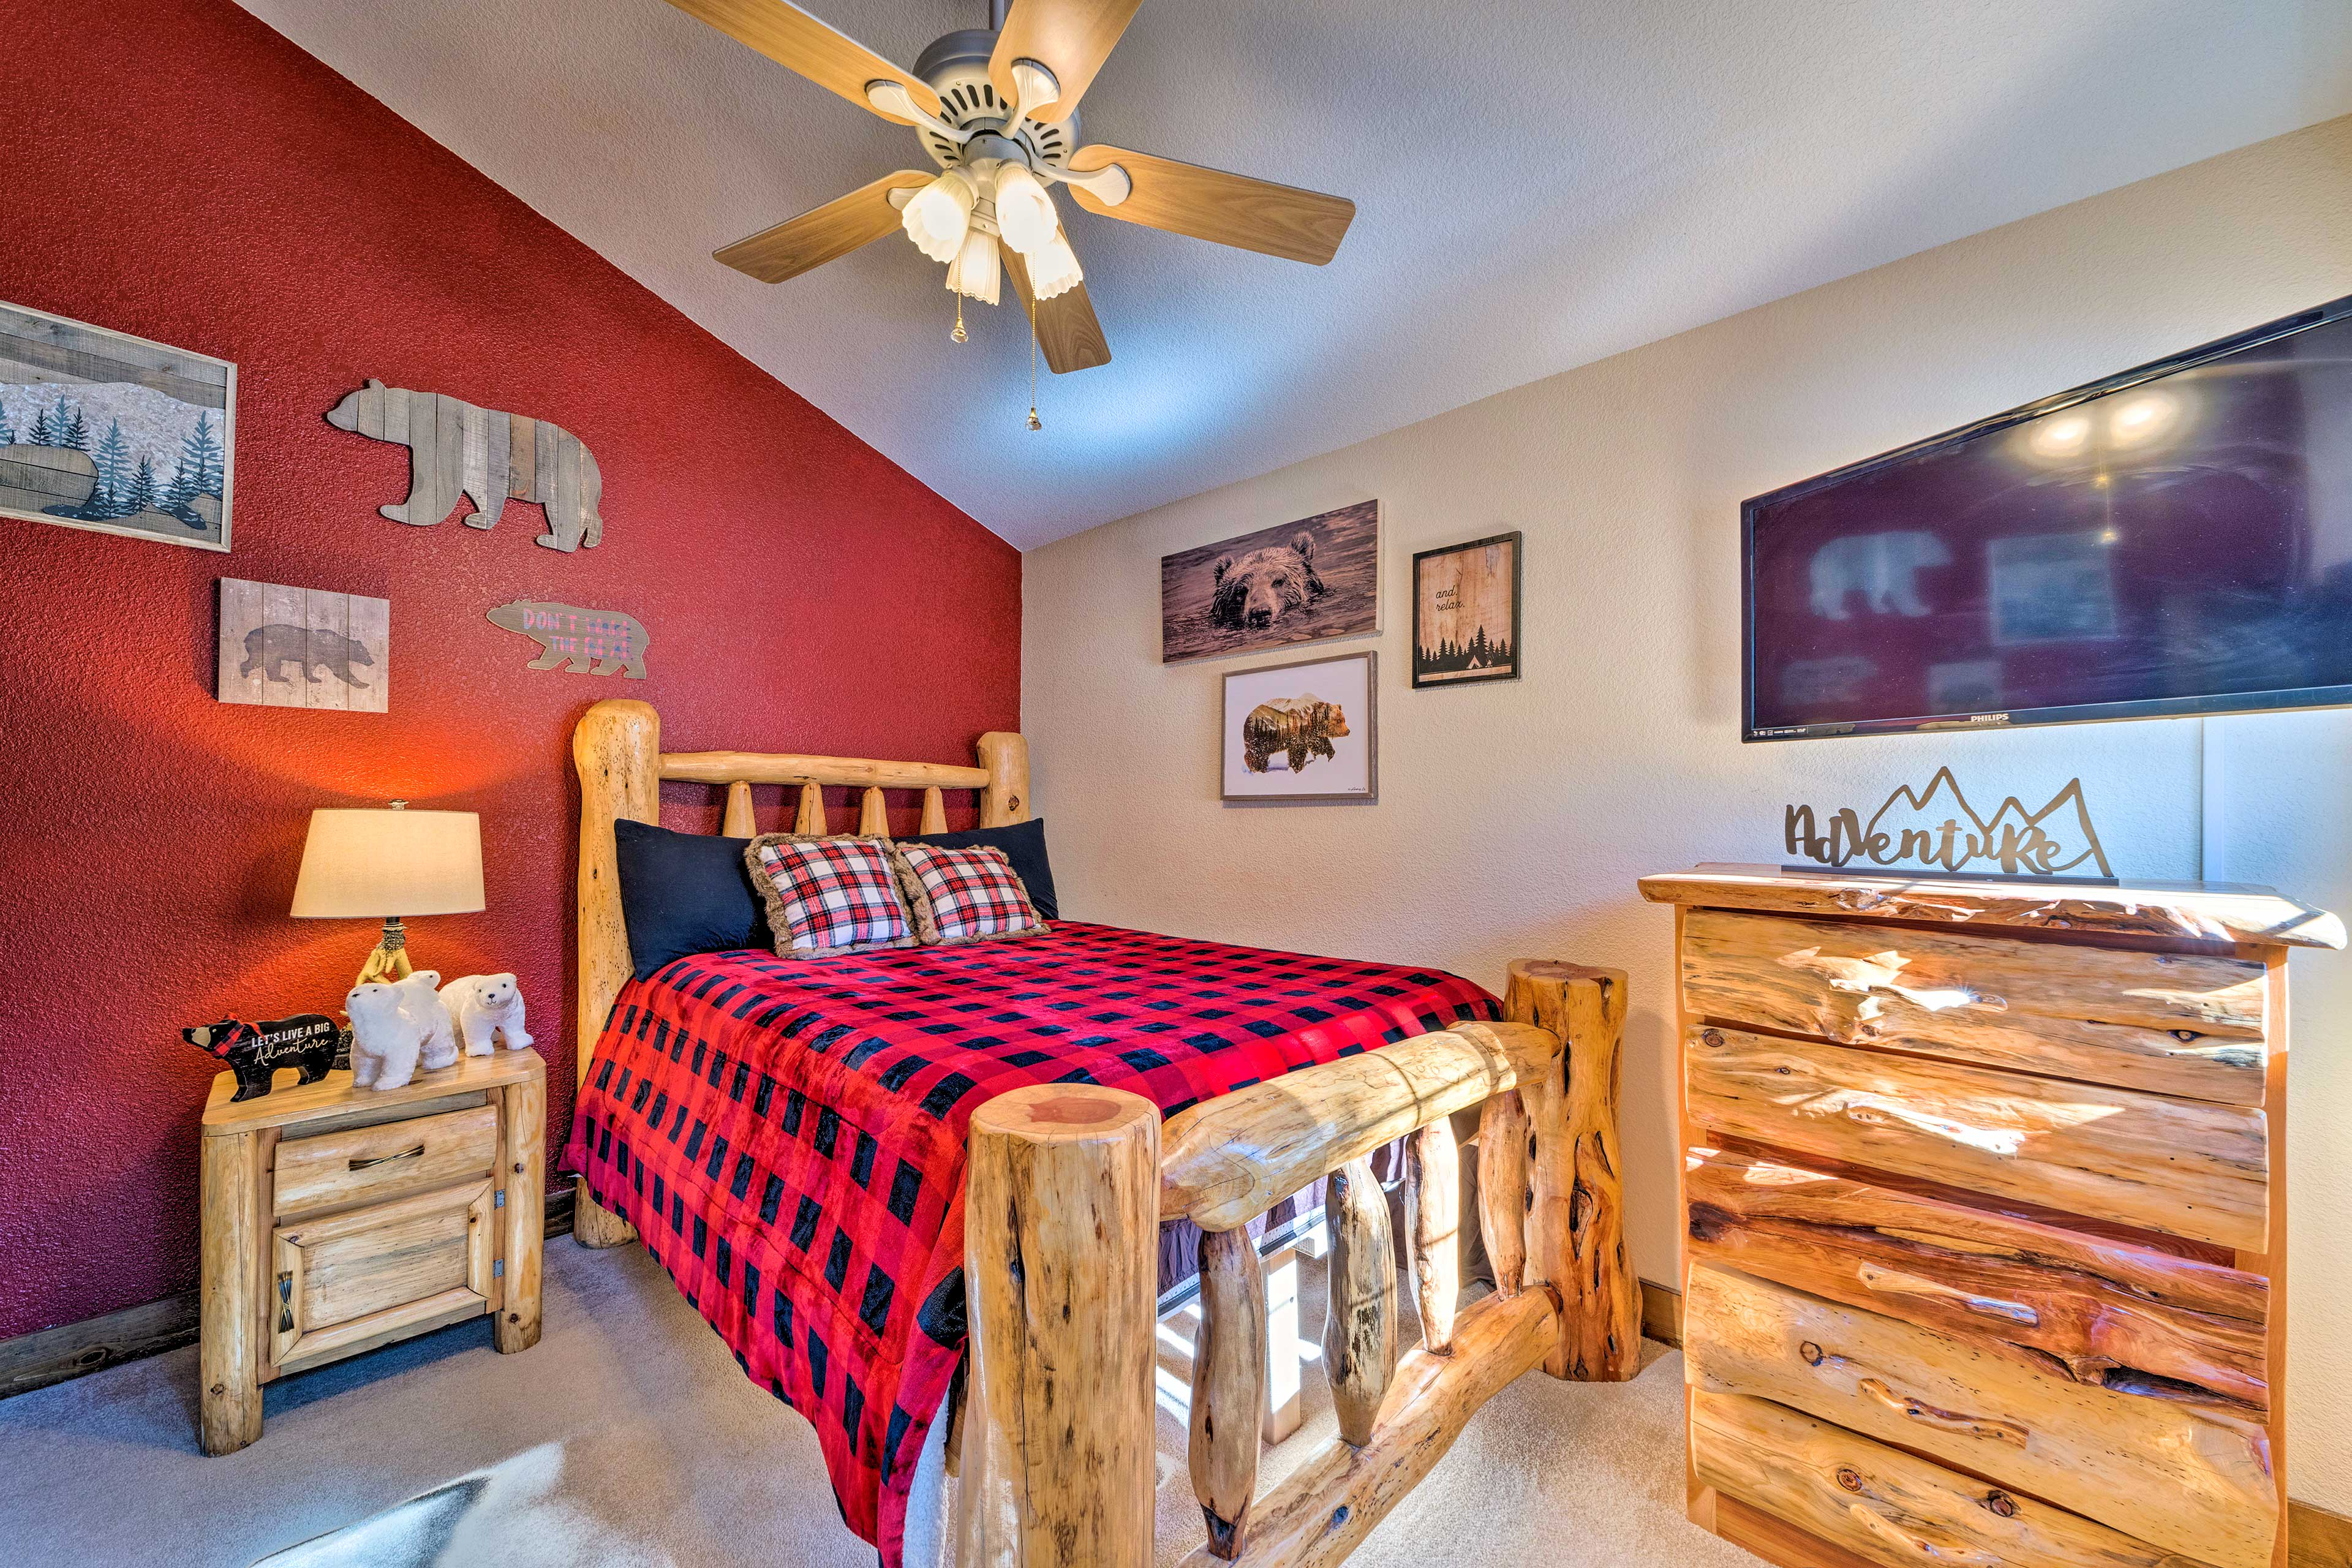 Cozy up in this queen bed each night.